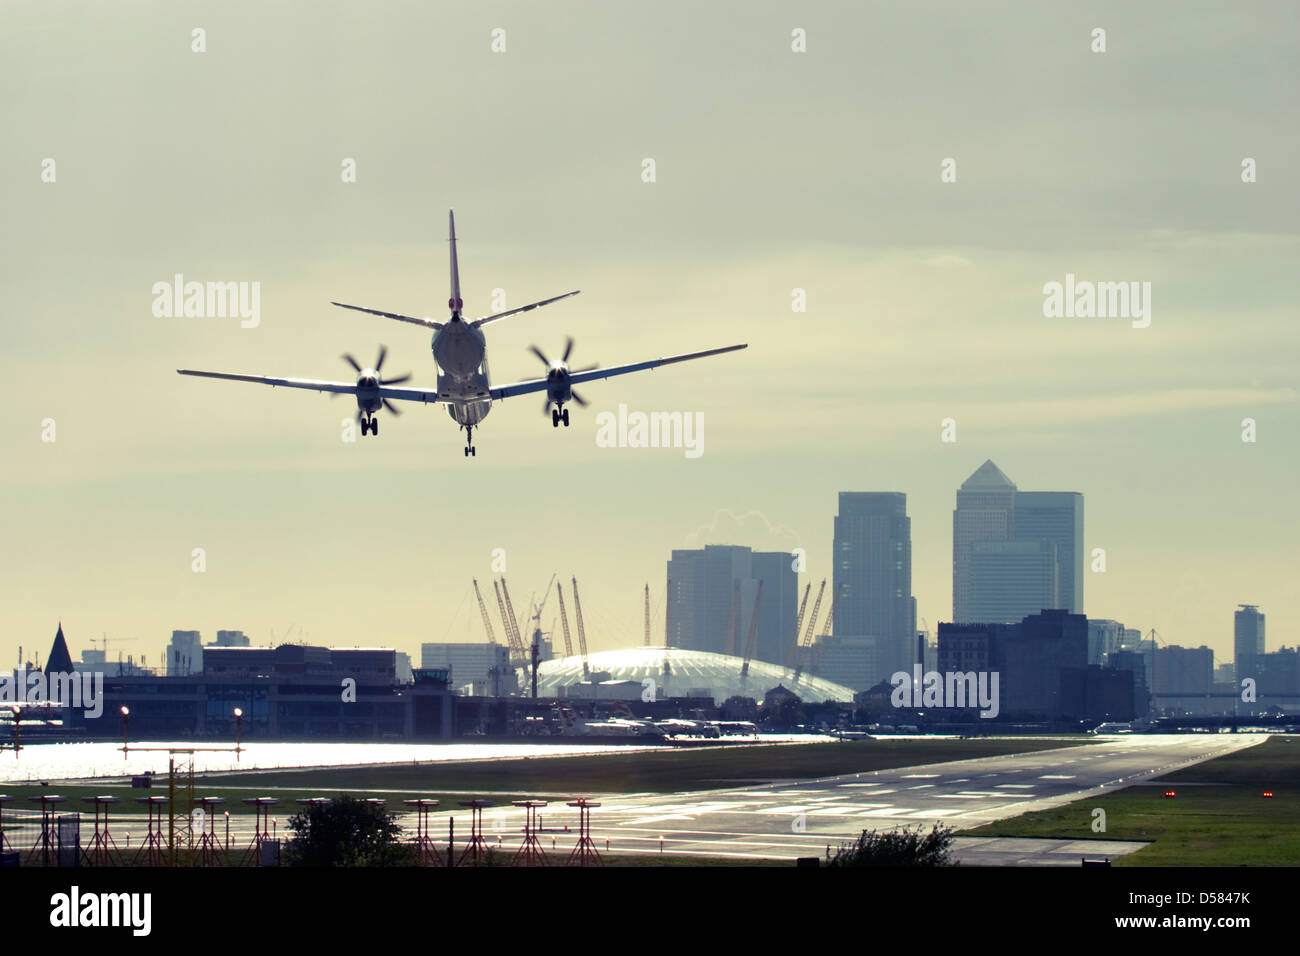 Commercial airplane landing at London City Airport, England, UK. Stock Photo